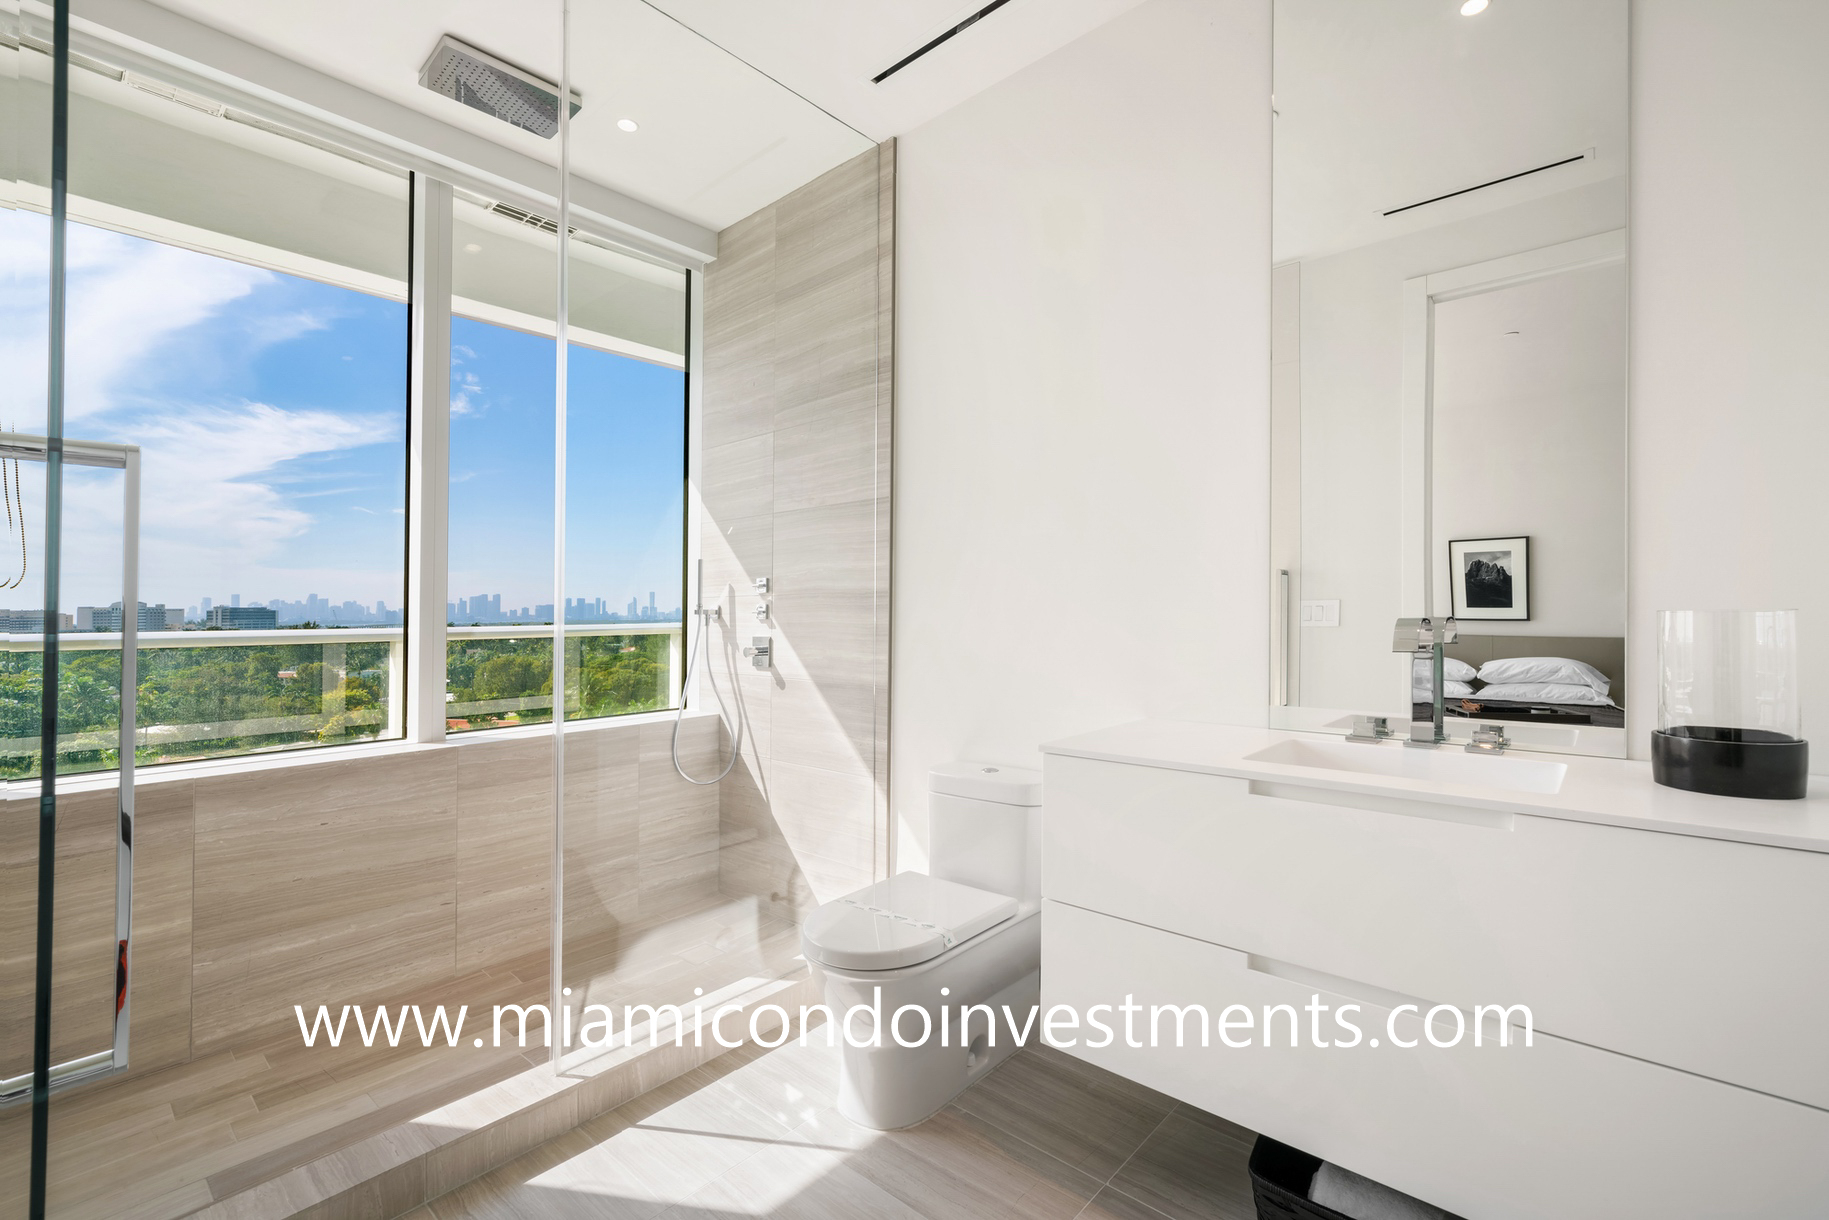 second bathroom with direct views of the downtown Miami skyline